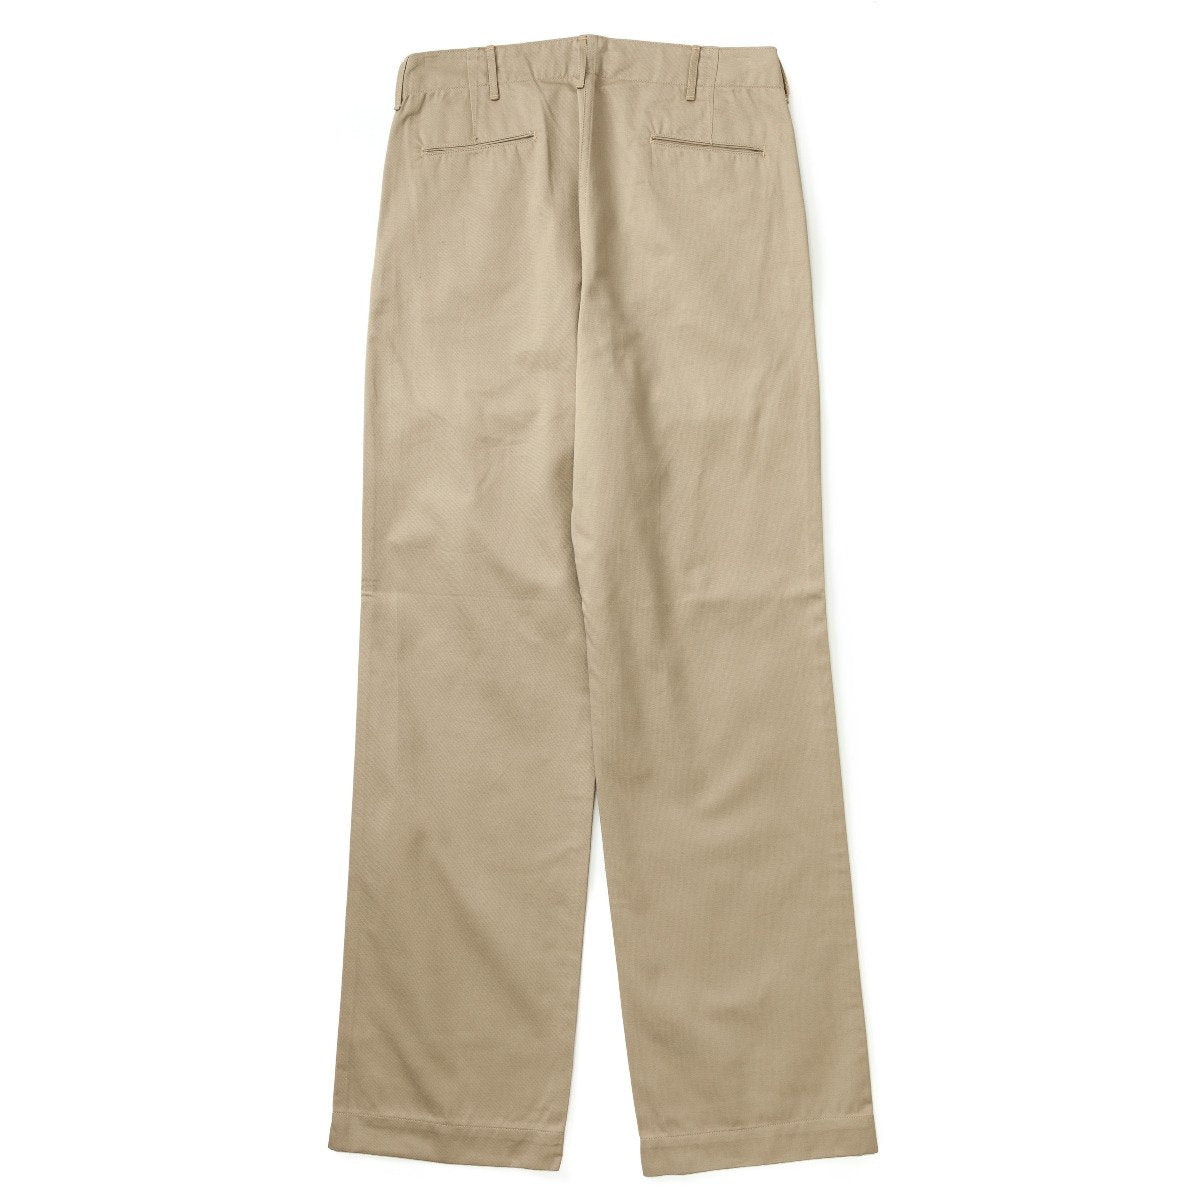 The Real McCoy's U.S. Army '41 Trousers MP17105